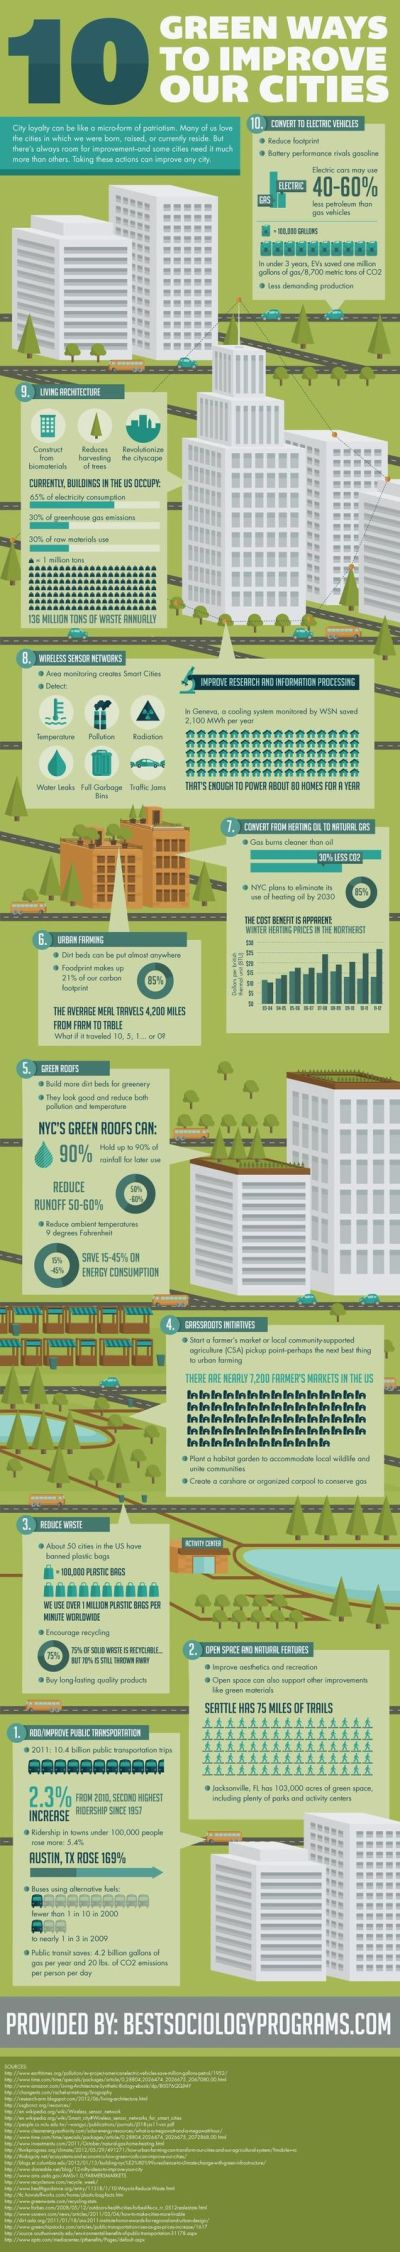 Cities resilience and climate action - via national geo.jpg